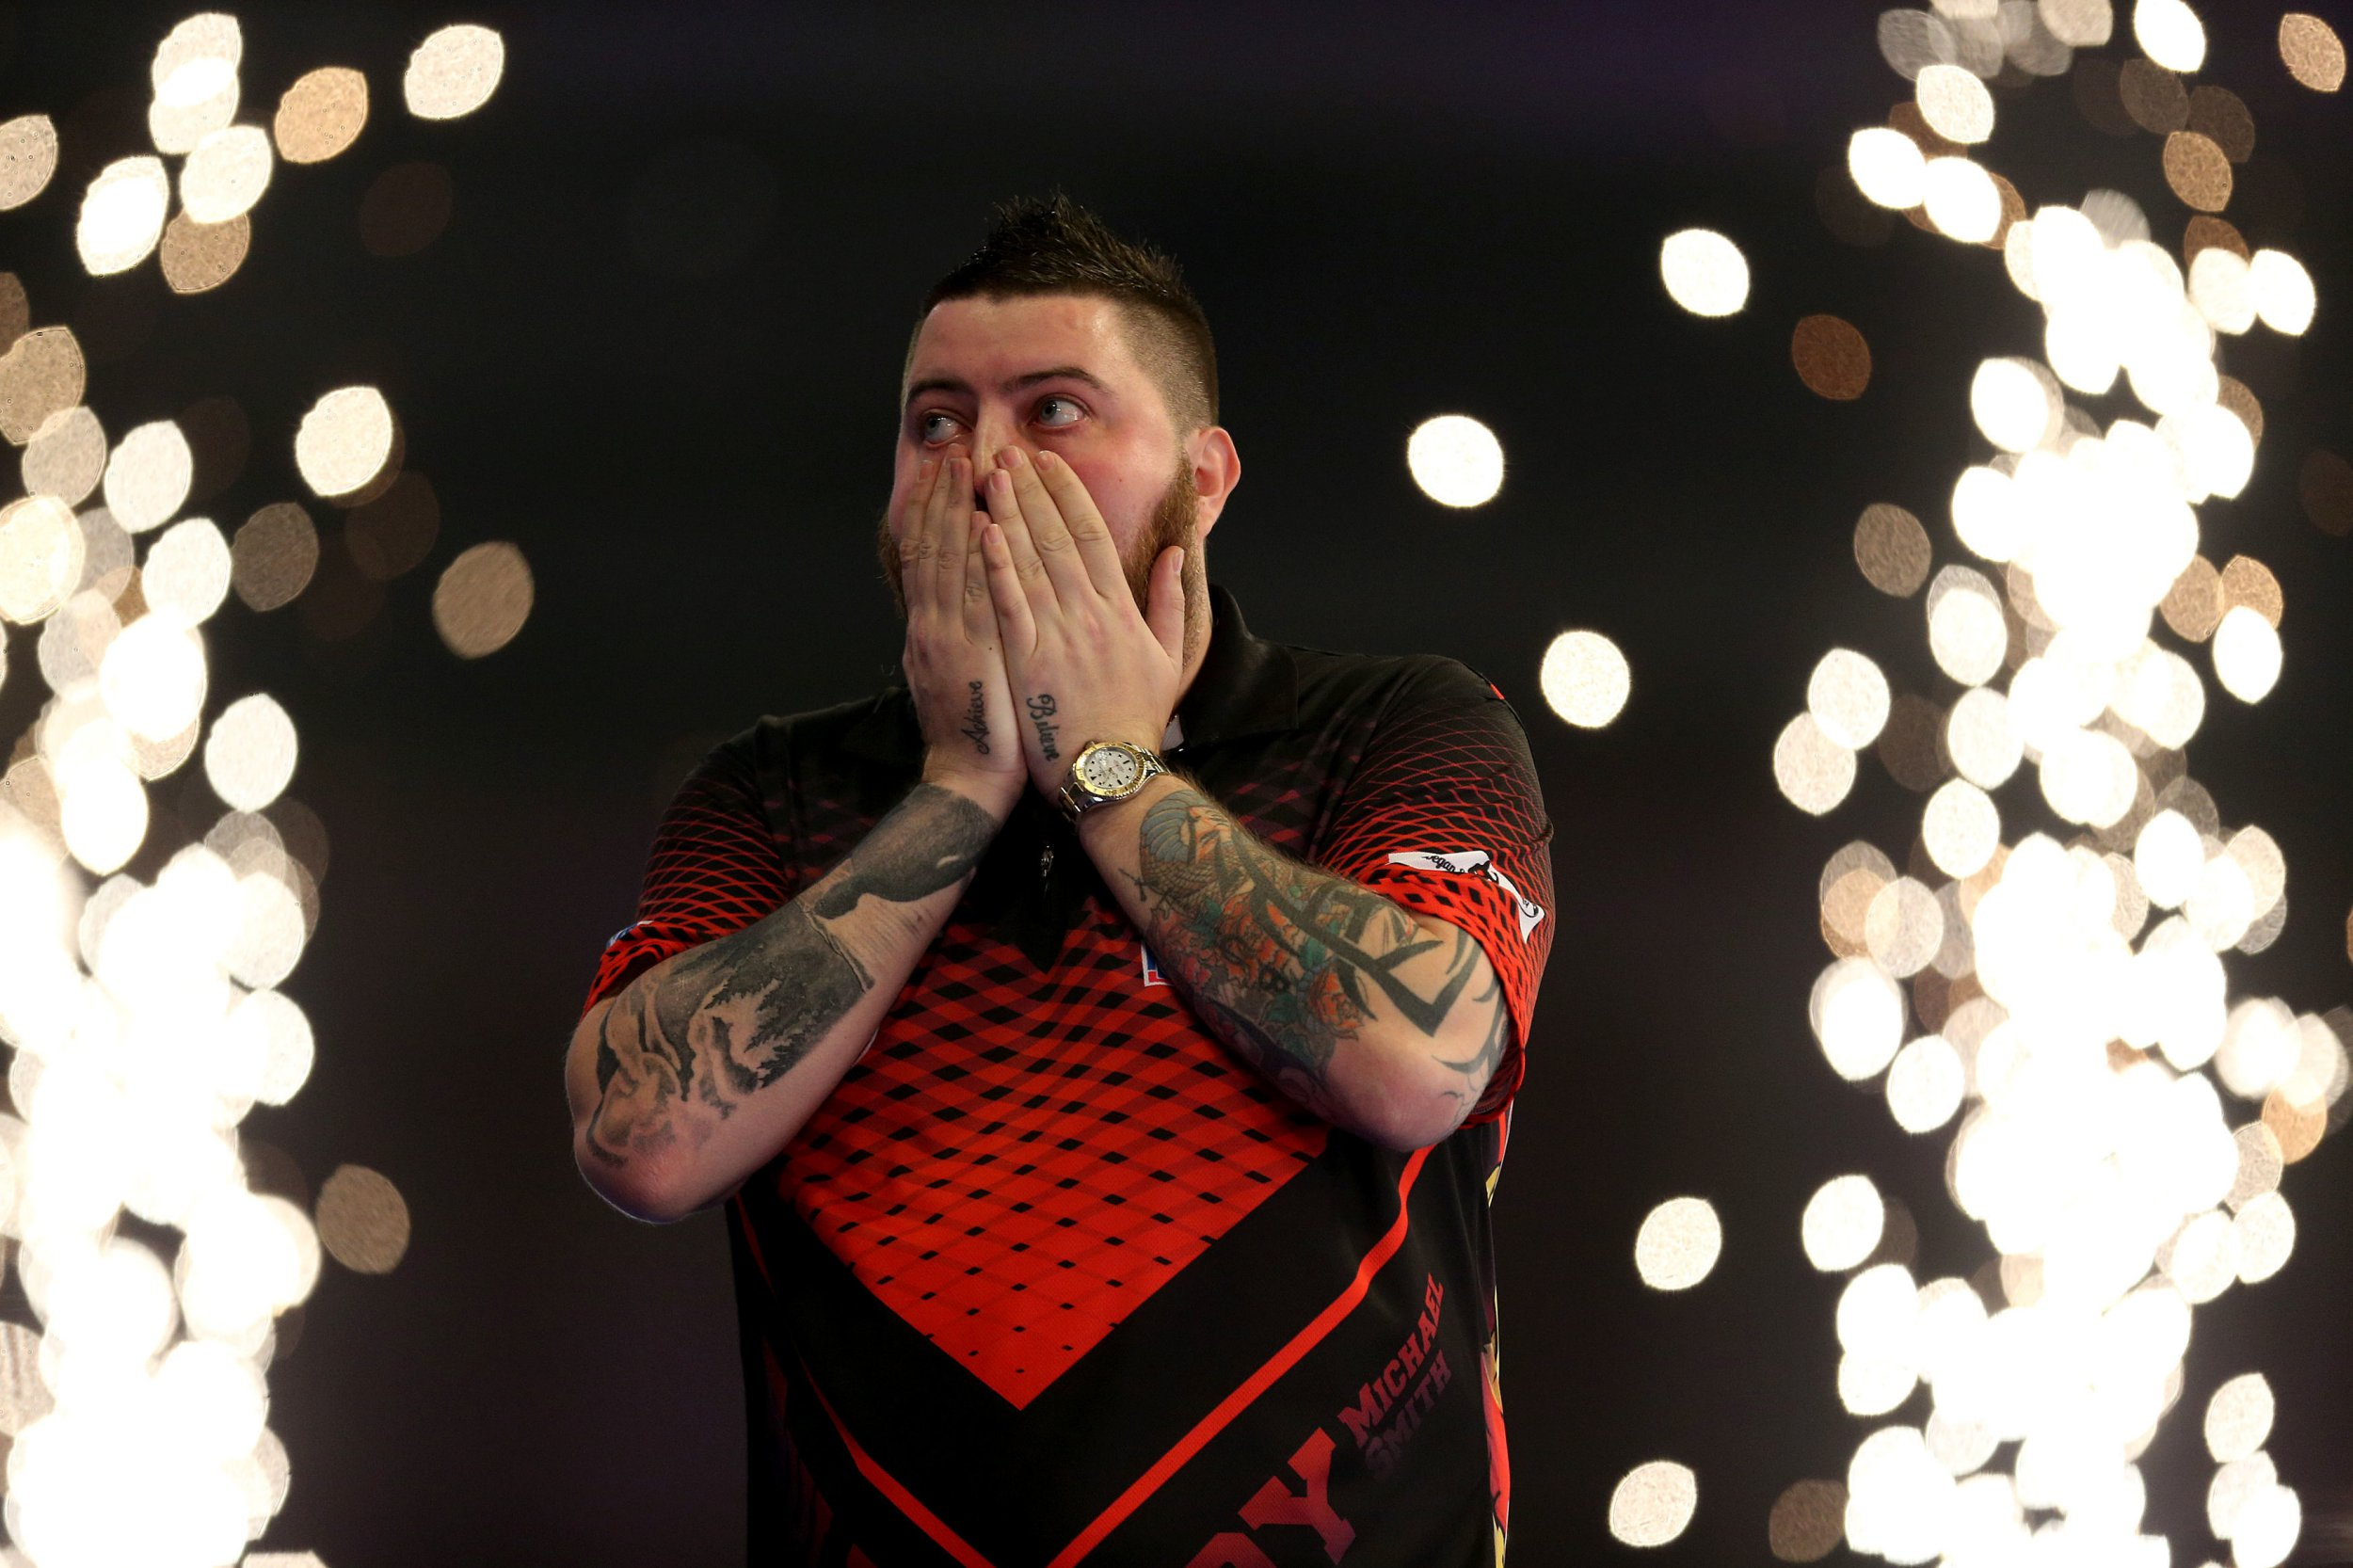 Michael Smith reacting after winning his match during day fifteen of the William Hill World Darts Championships at Alexandra Palace, London. PRESS ASSOCIATION Photo. Picture date: Sunday December 30, 2018. Photo credit should read: Steven Paston/PA Wire